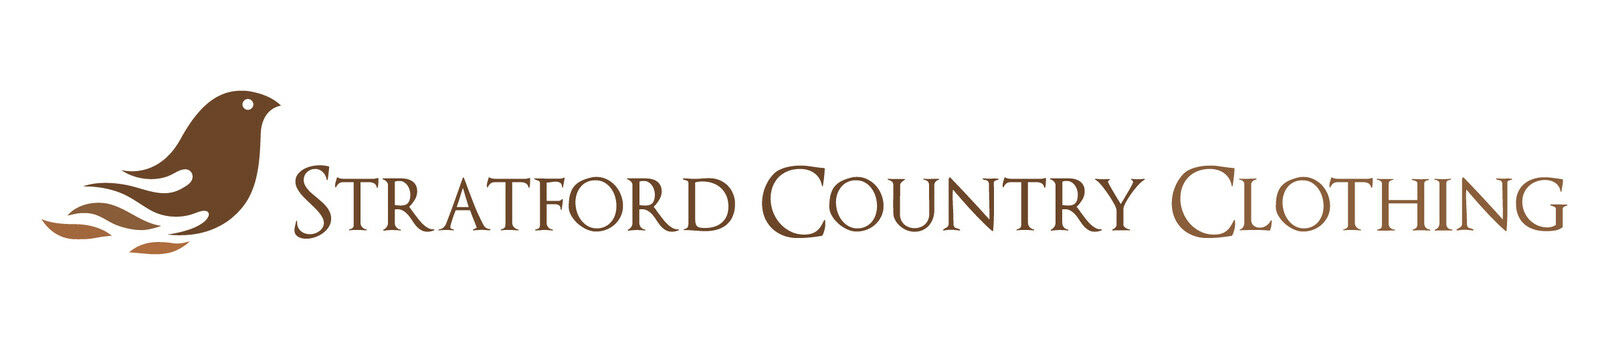 Stratford Country Clothing